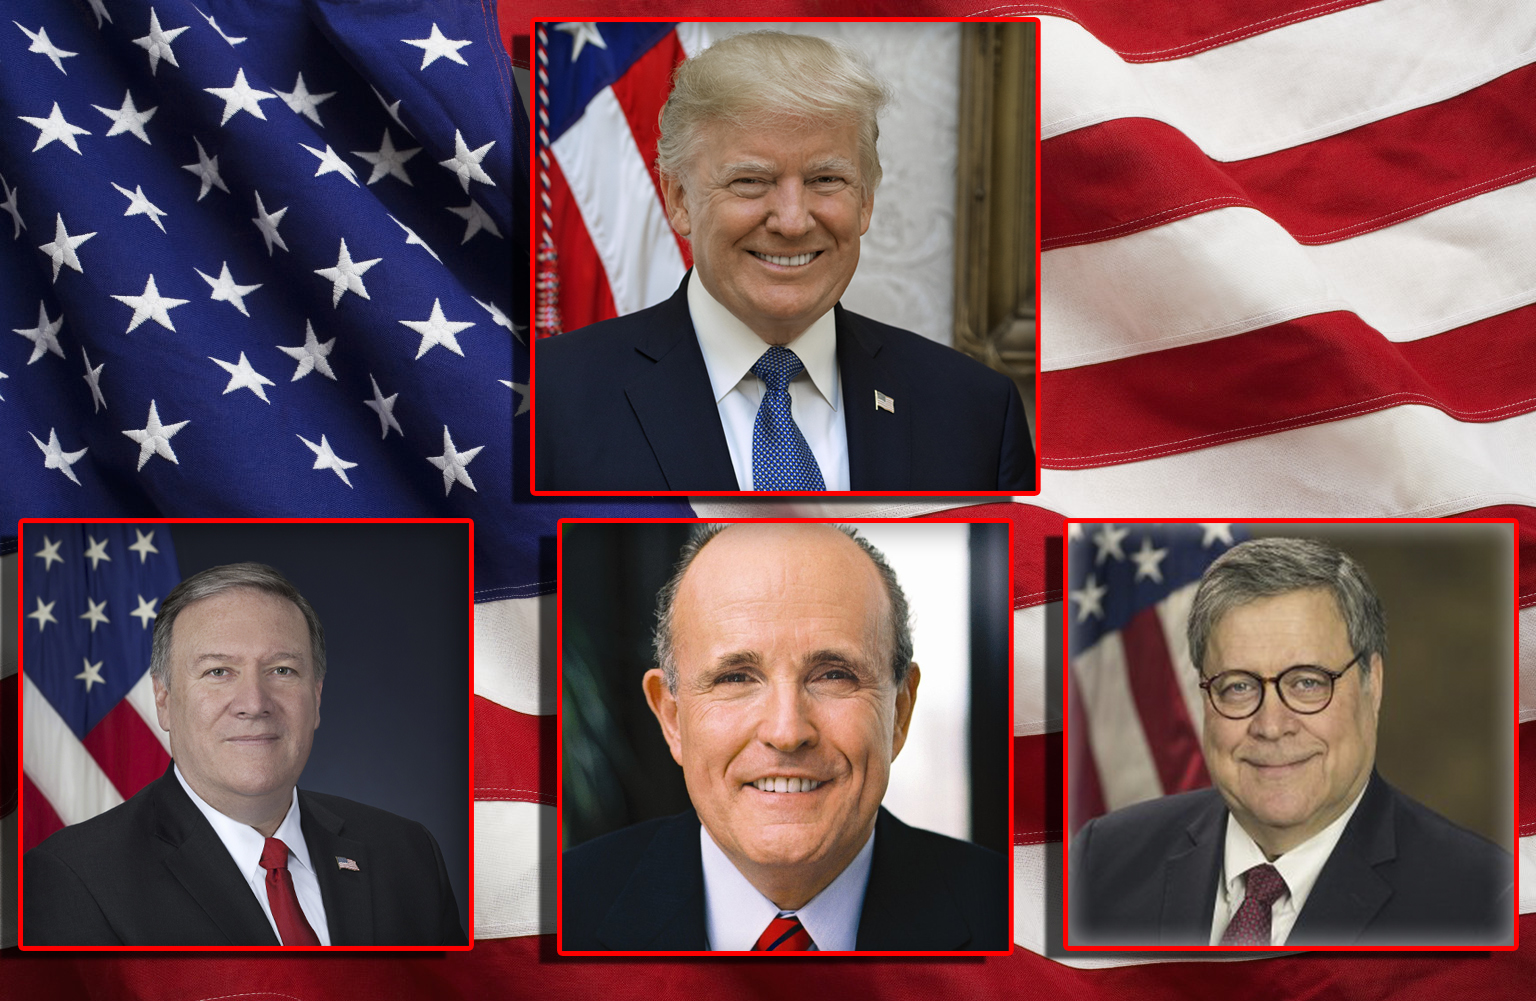 Quiz: Which of These Big, Dumb, Obnoxious, Lying Idiots Thinks He's Above the Law?